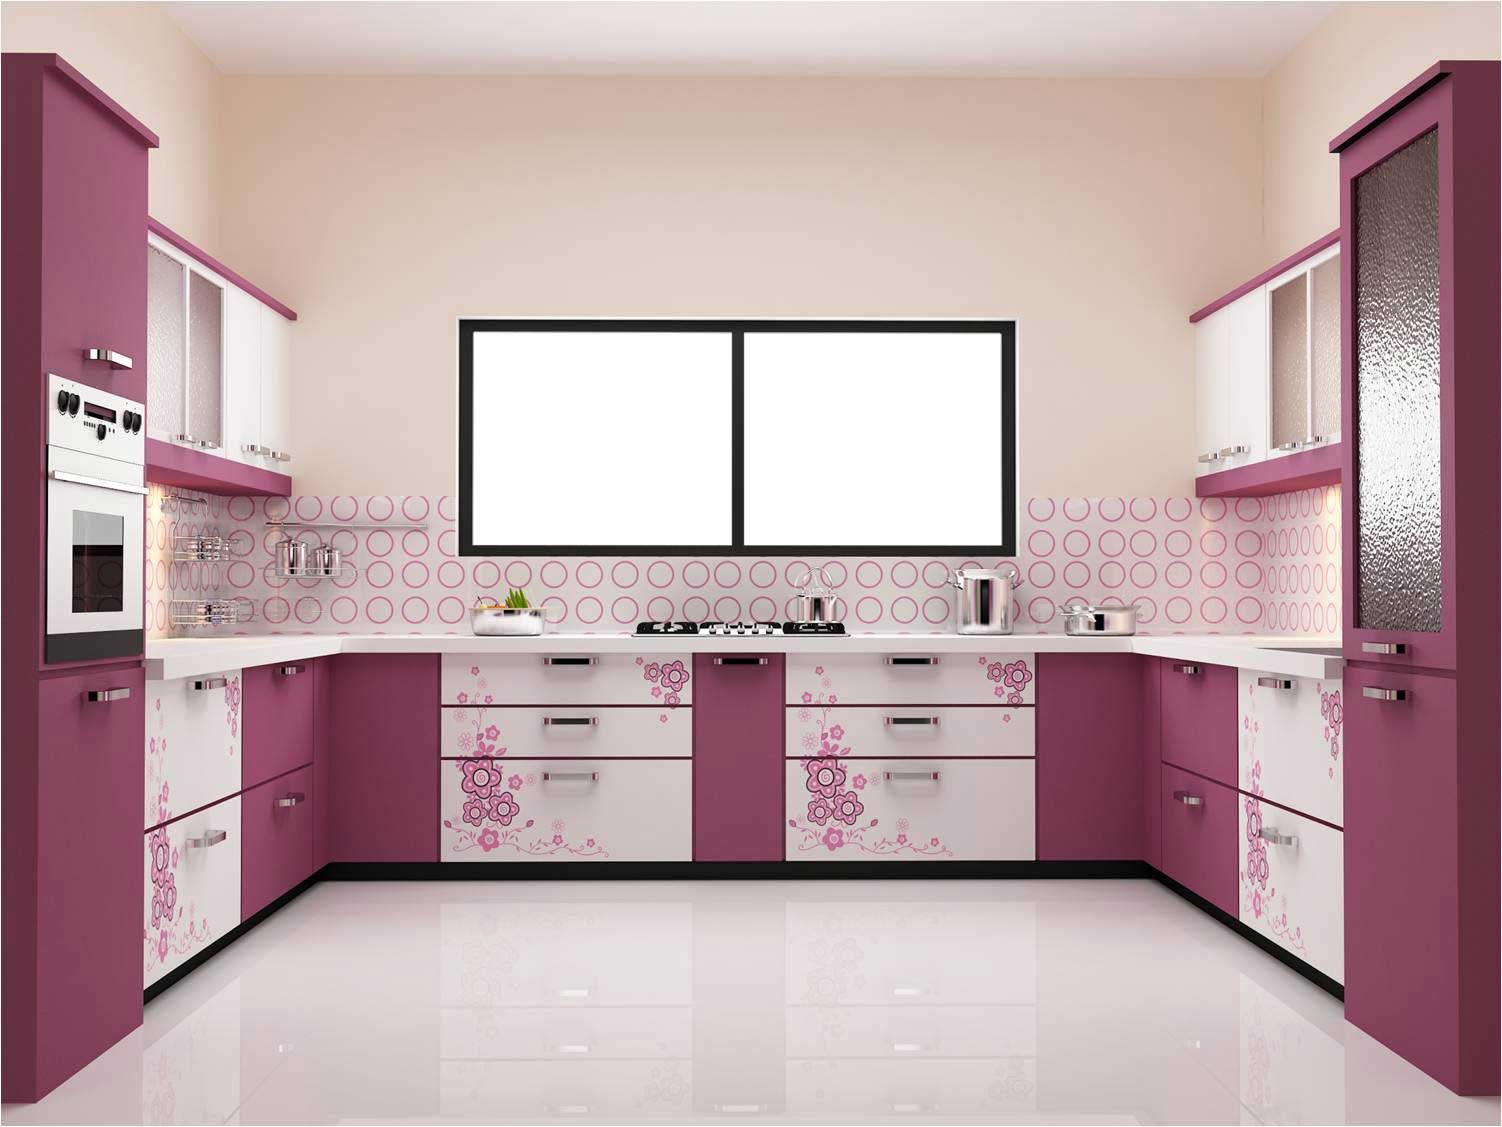 Modular Kitchen Furniture 1000 Images About Modular Kitchen On Pinterest Red And Blue